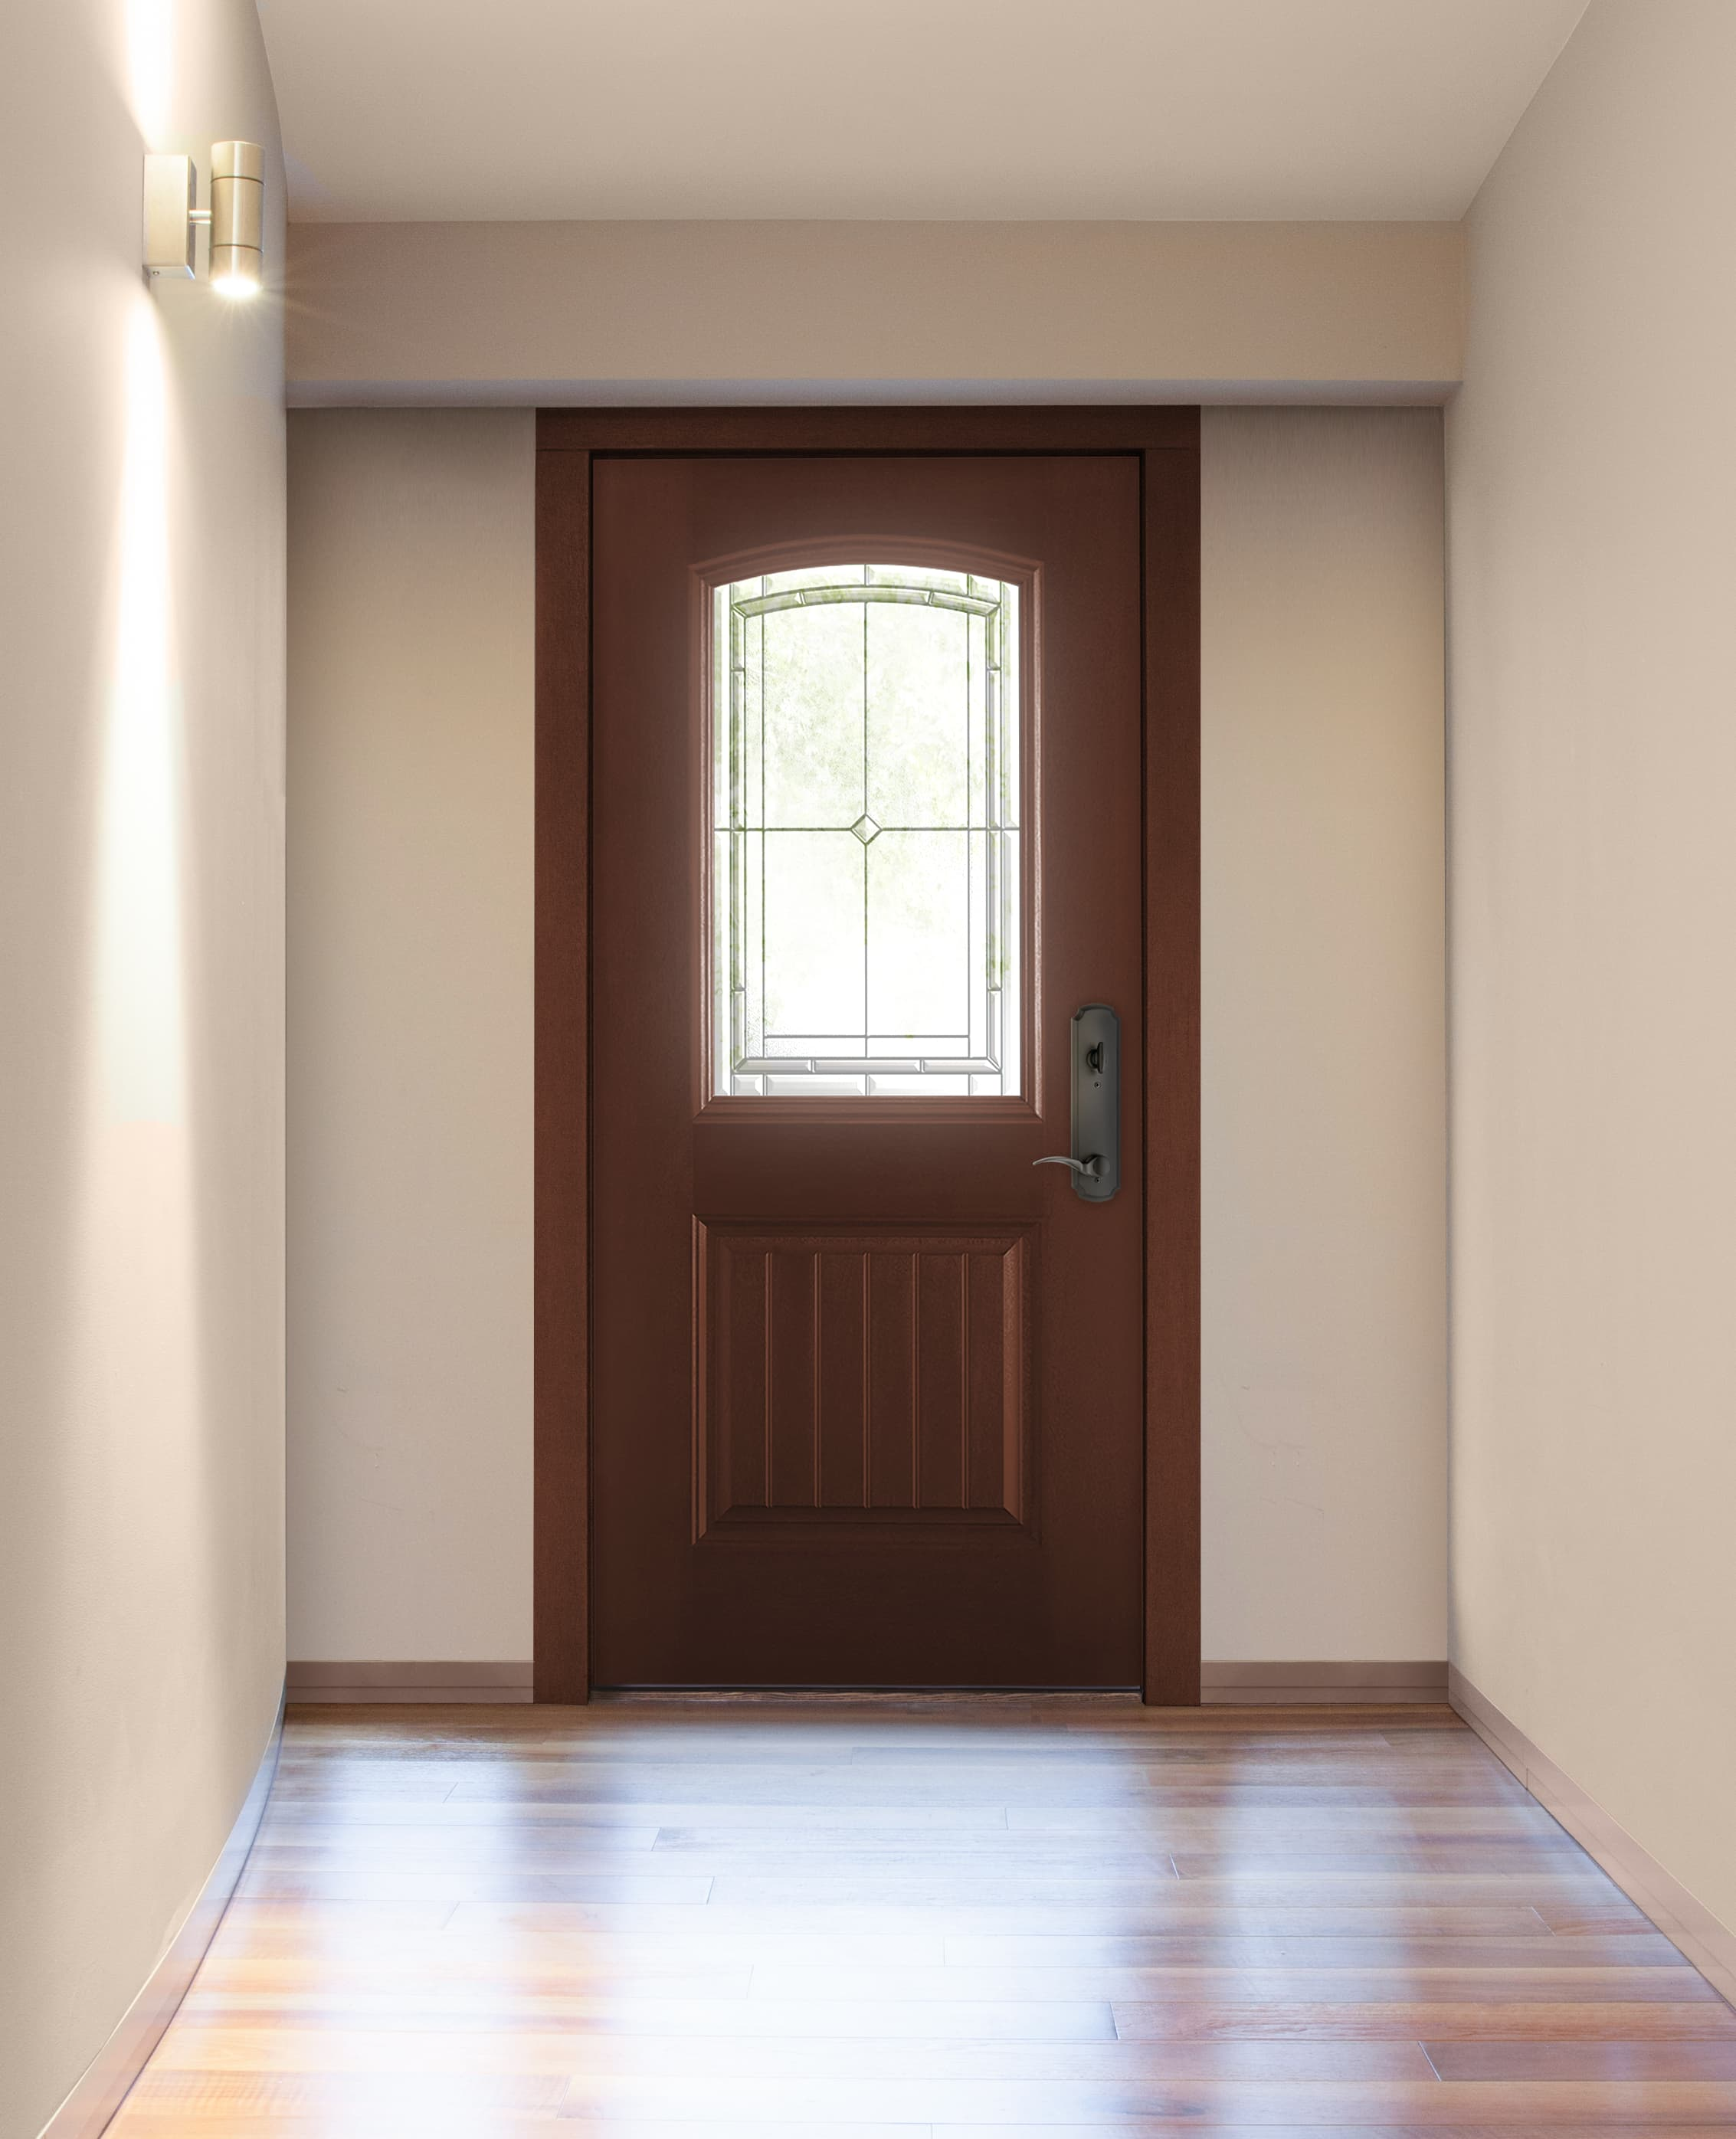 Brown fiberglass entry door with decorative glass